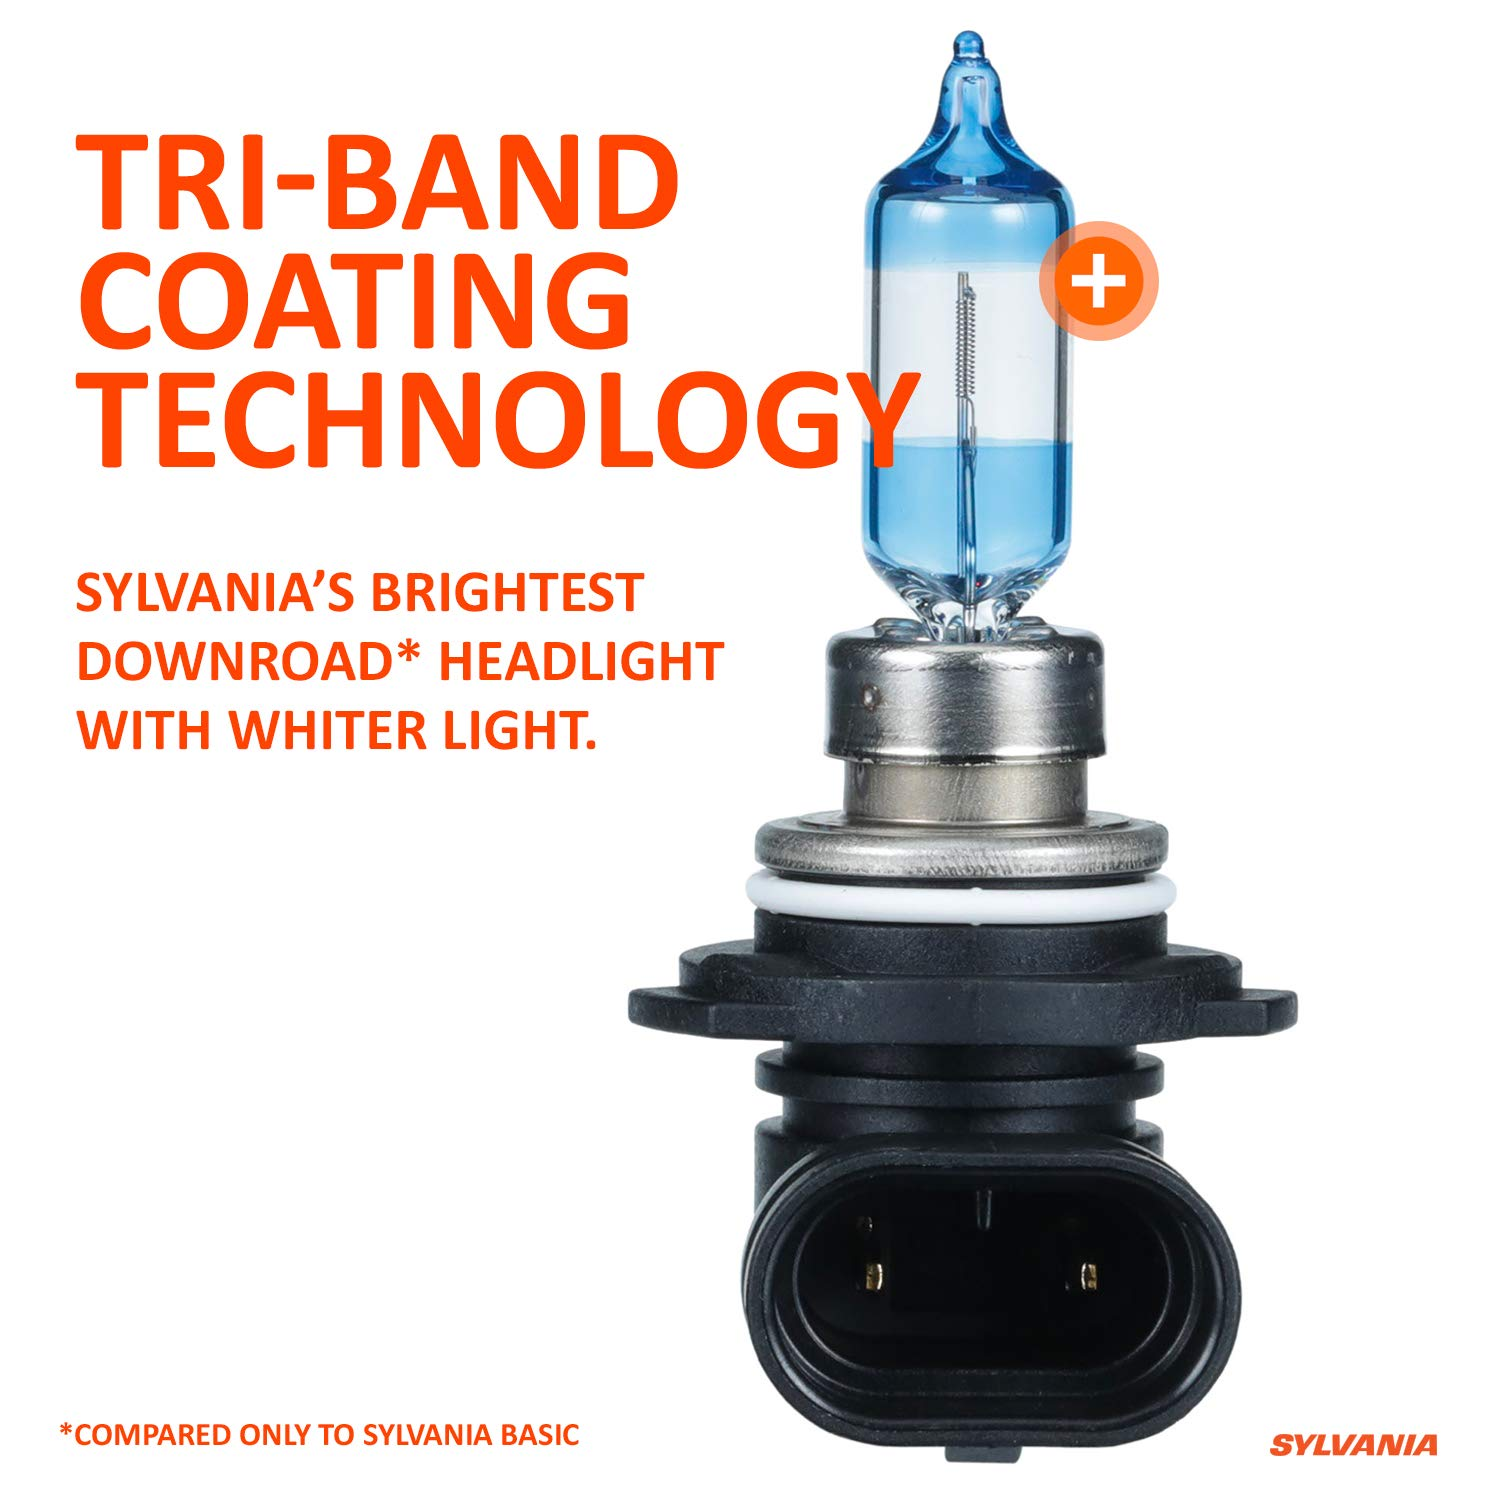 9003SU.BP2 9003 SilverStar Ultra Tri-Band Technology High Performance Halogen Headlight Bulb Brightest Downroad with Whiter Light Low Beam and Fog Replacement Bulb SYLVANIA Contains 2 Bulbs High Beam